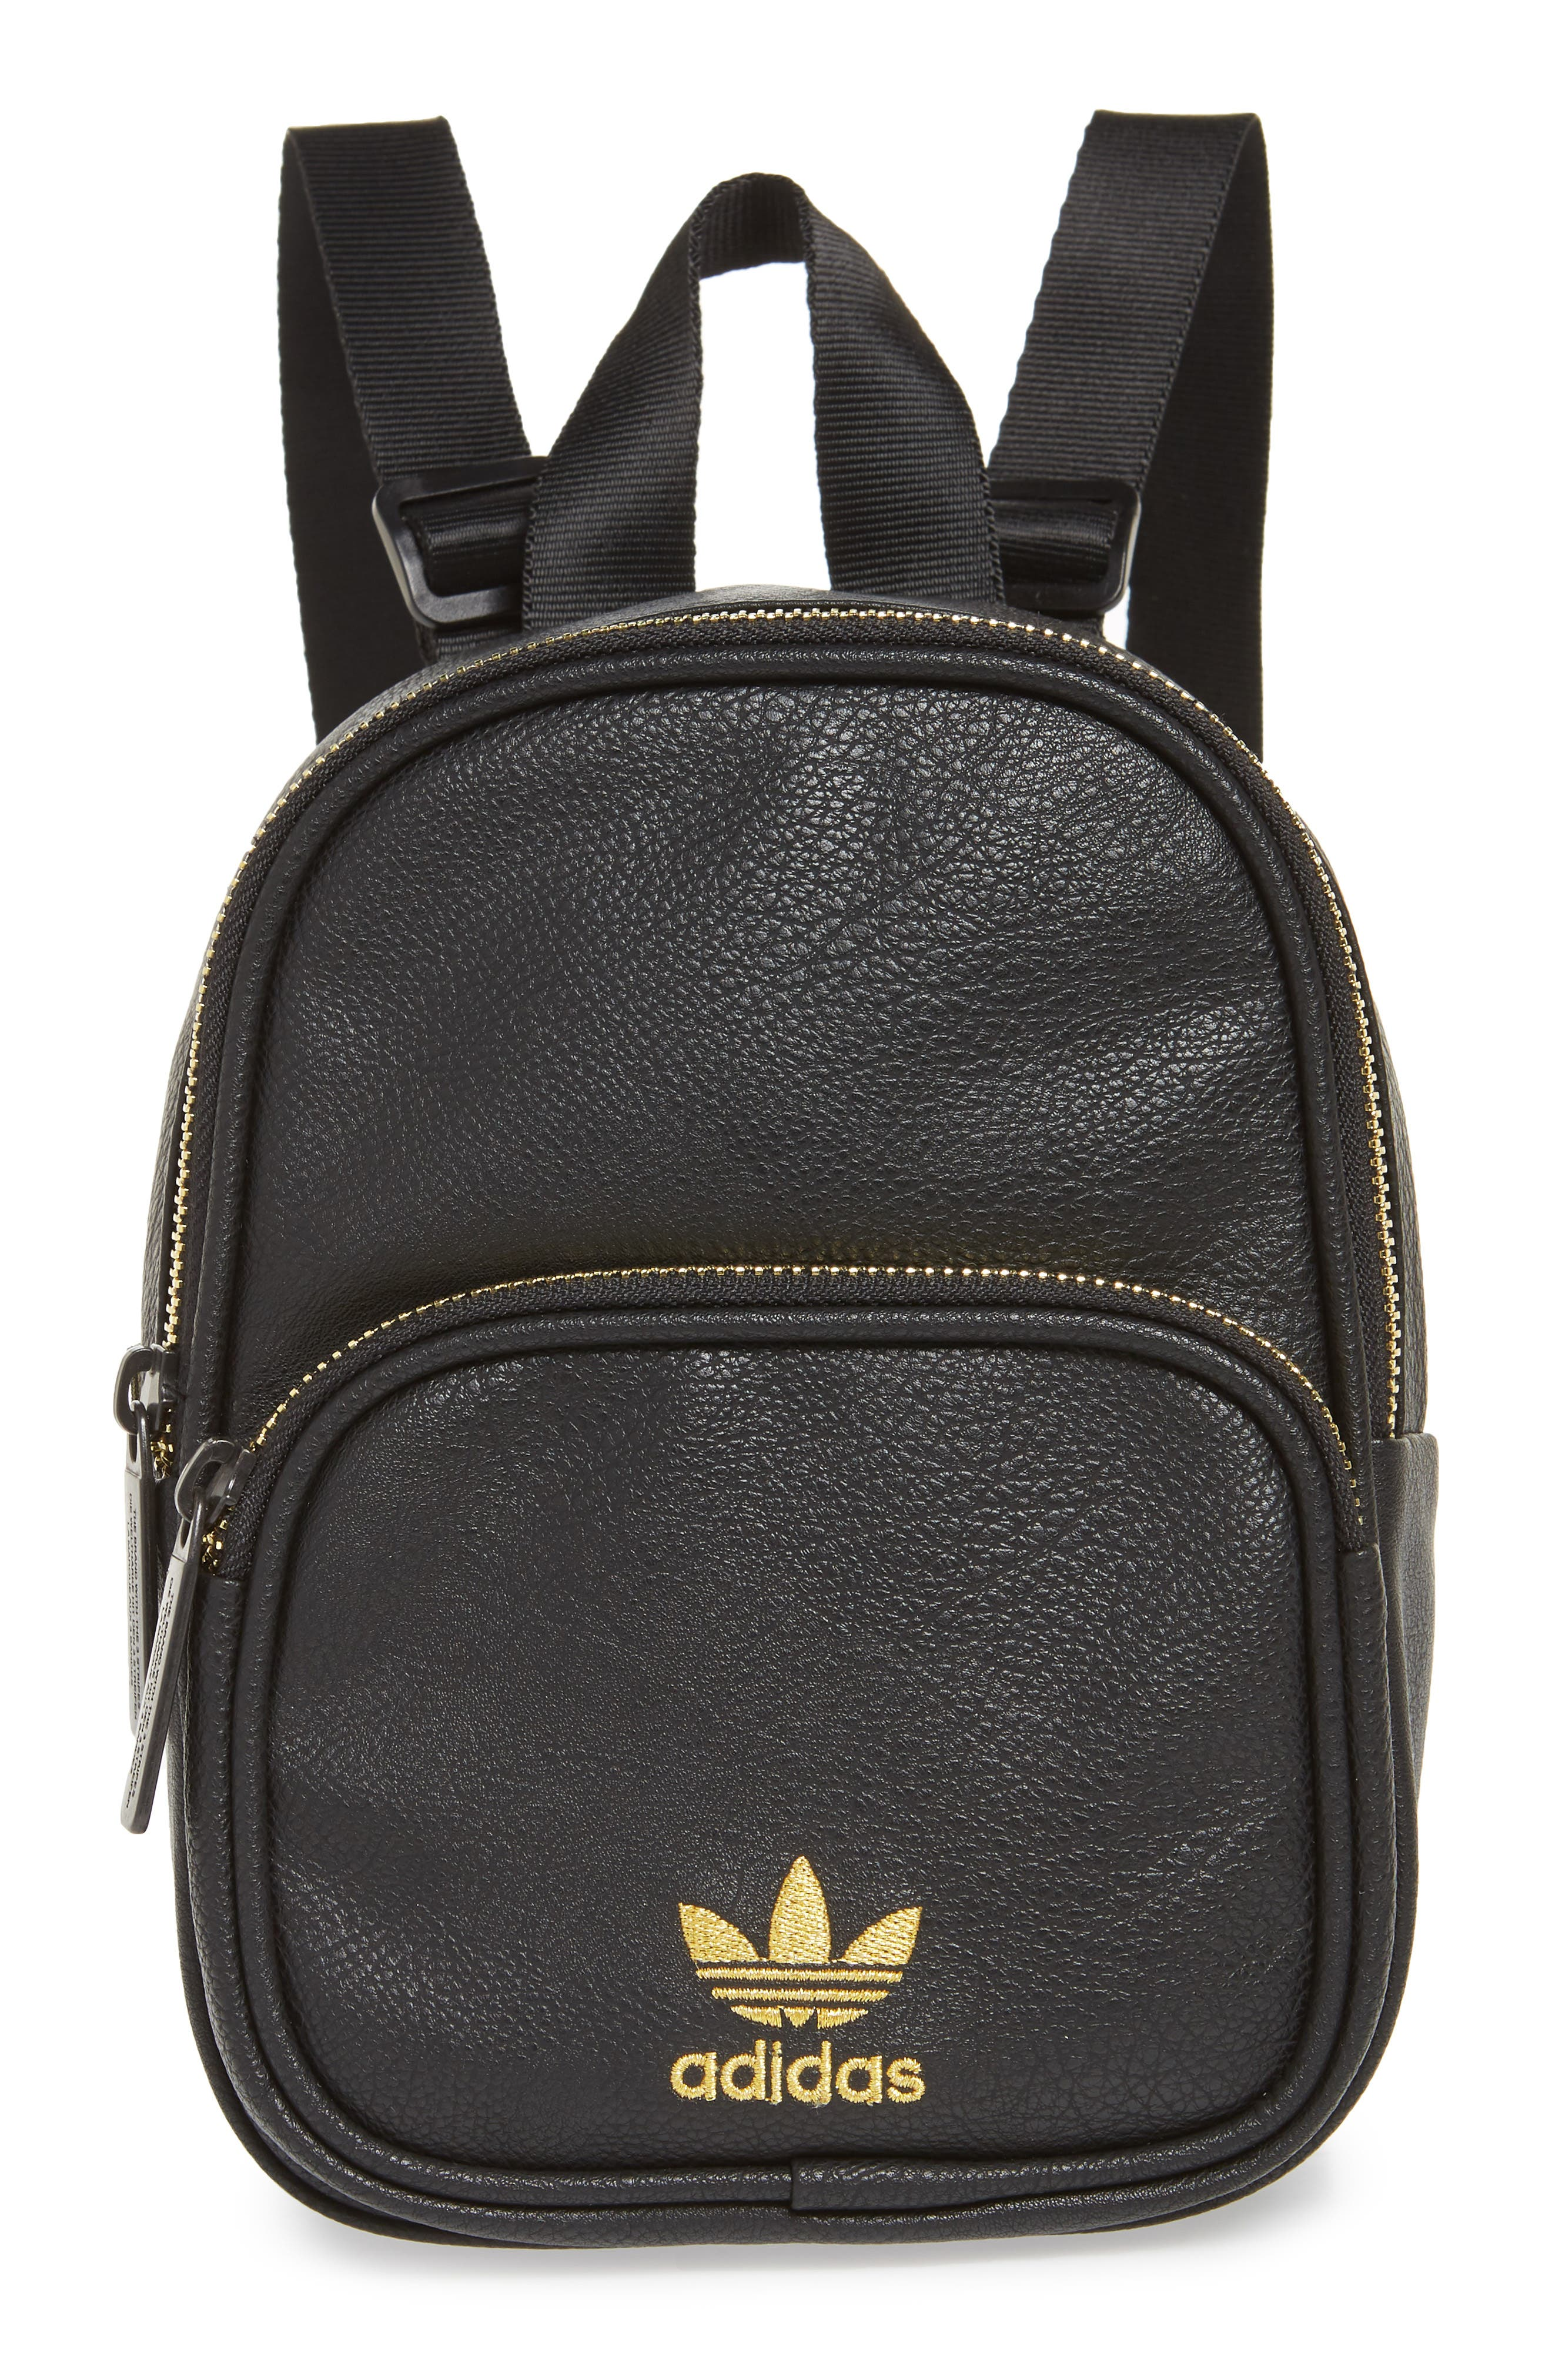 Originals Mini Faux Leather Backpack - Black